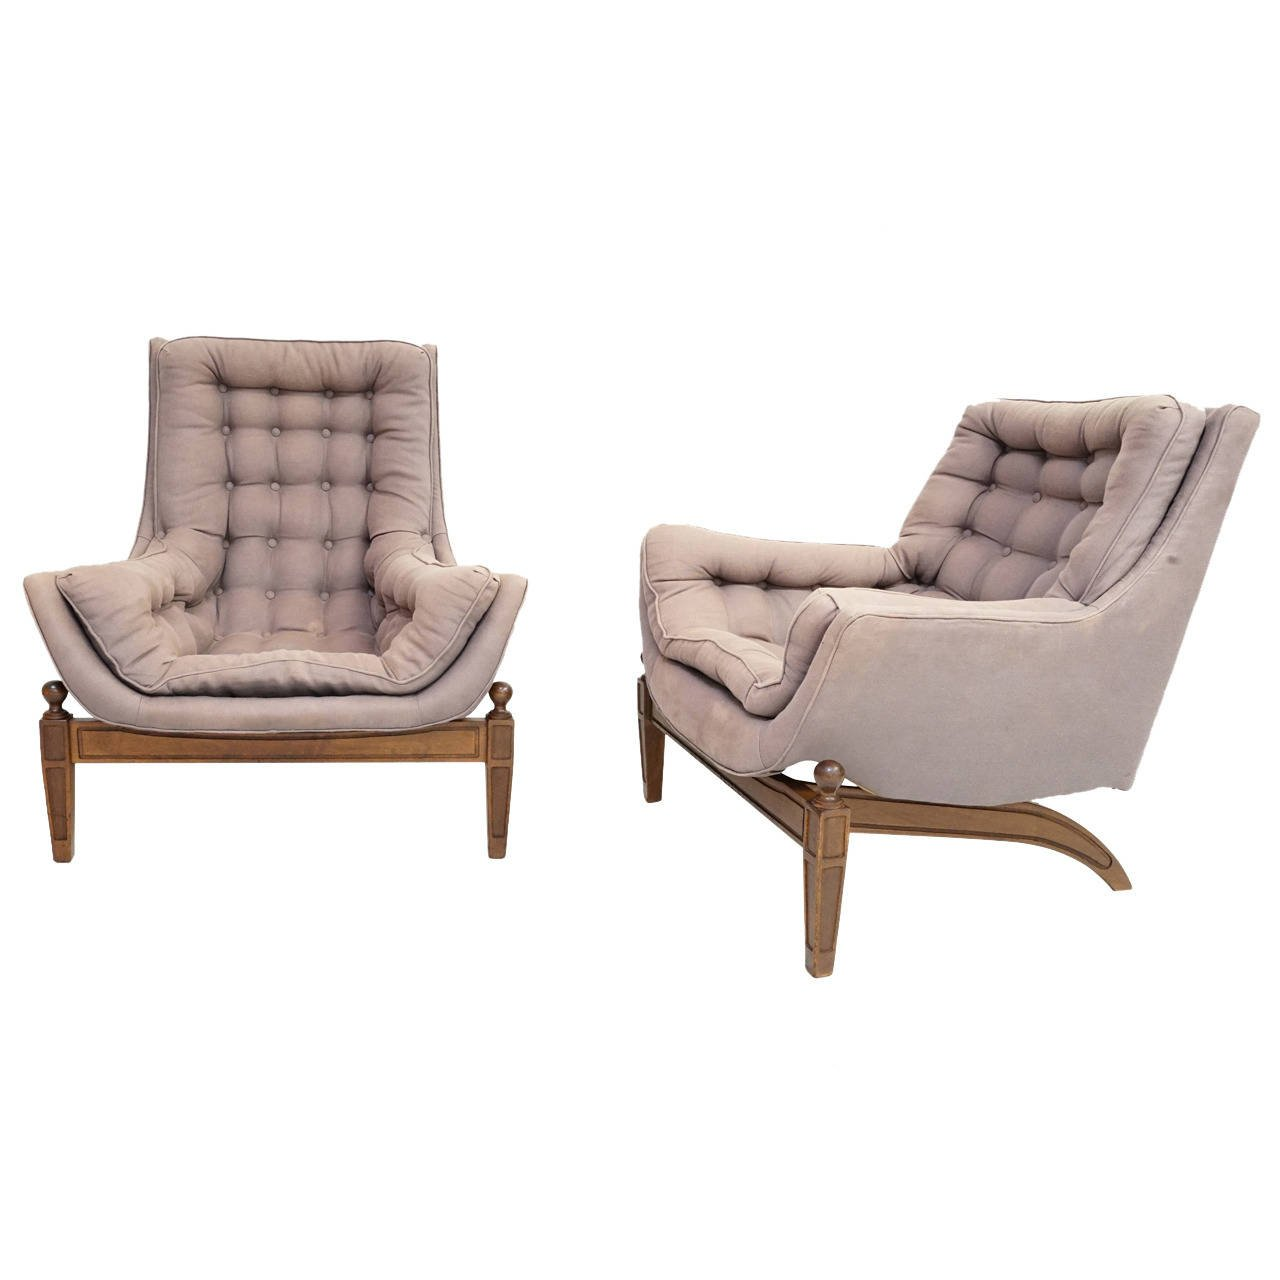 Tufted Chair | White Tufted Accent Chair | Upholstered Accent Chairs